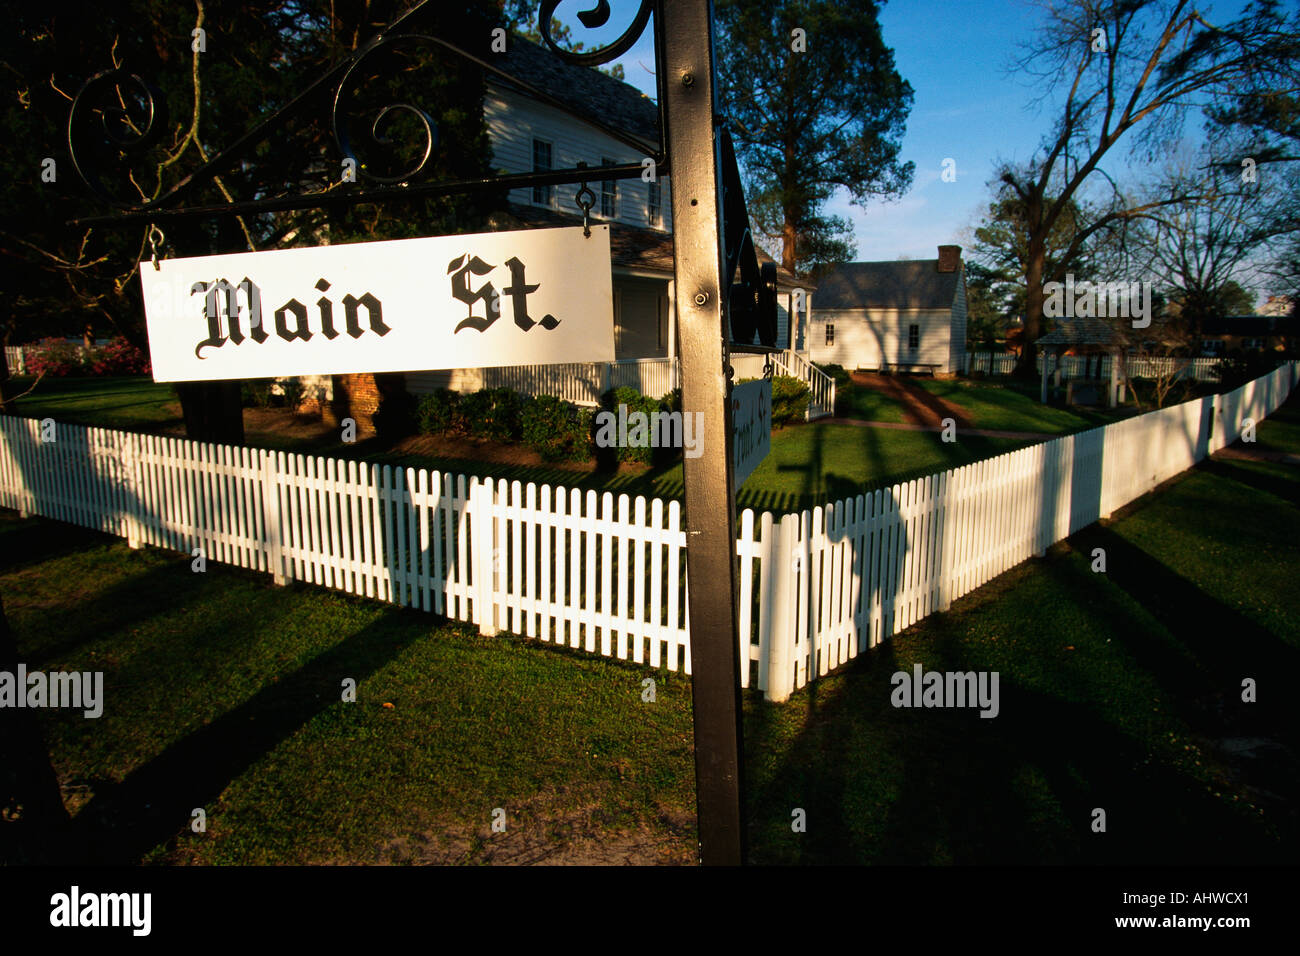 Bath North Carolina Stock Photos Images Wiring Harness Alligator Fence This Is A Photo Of Typical Suburban House On Main Street Usa There